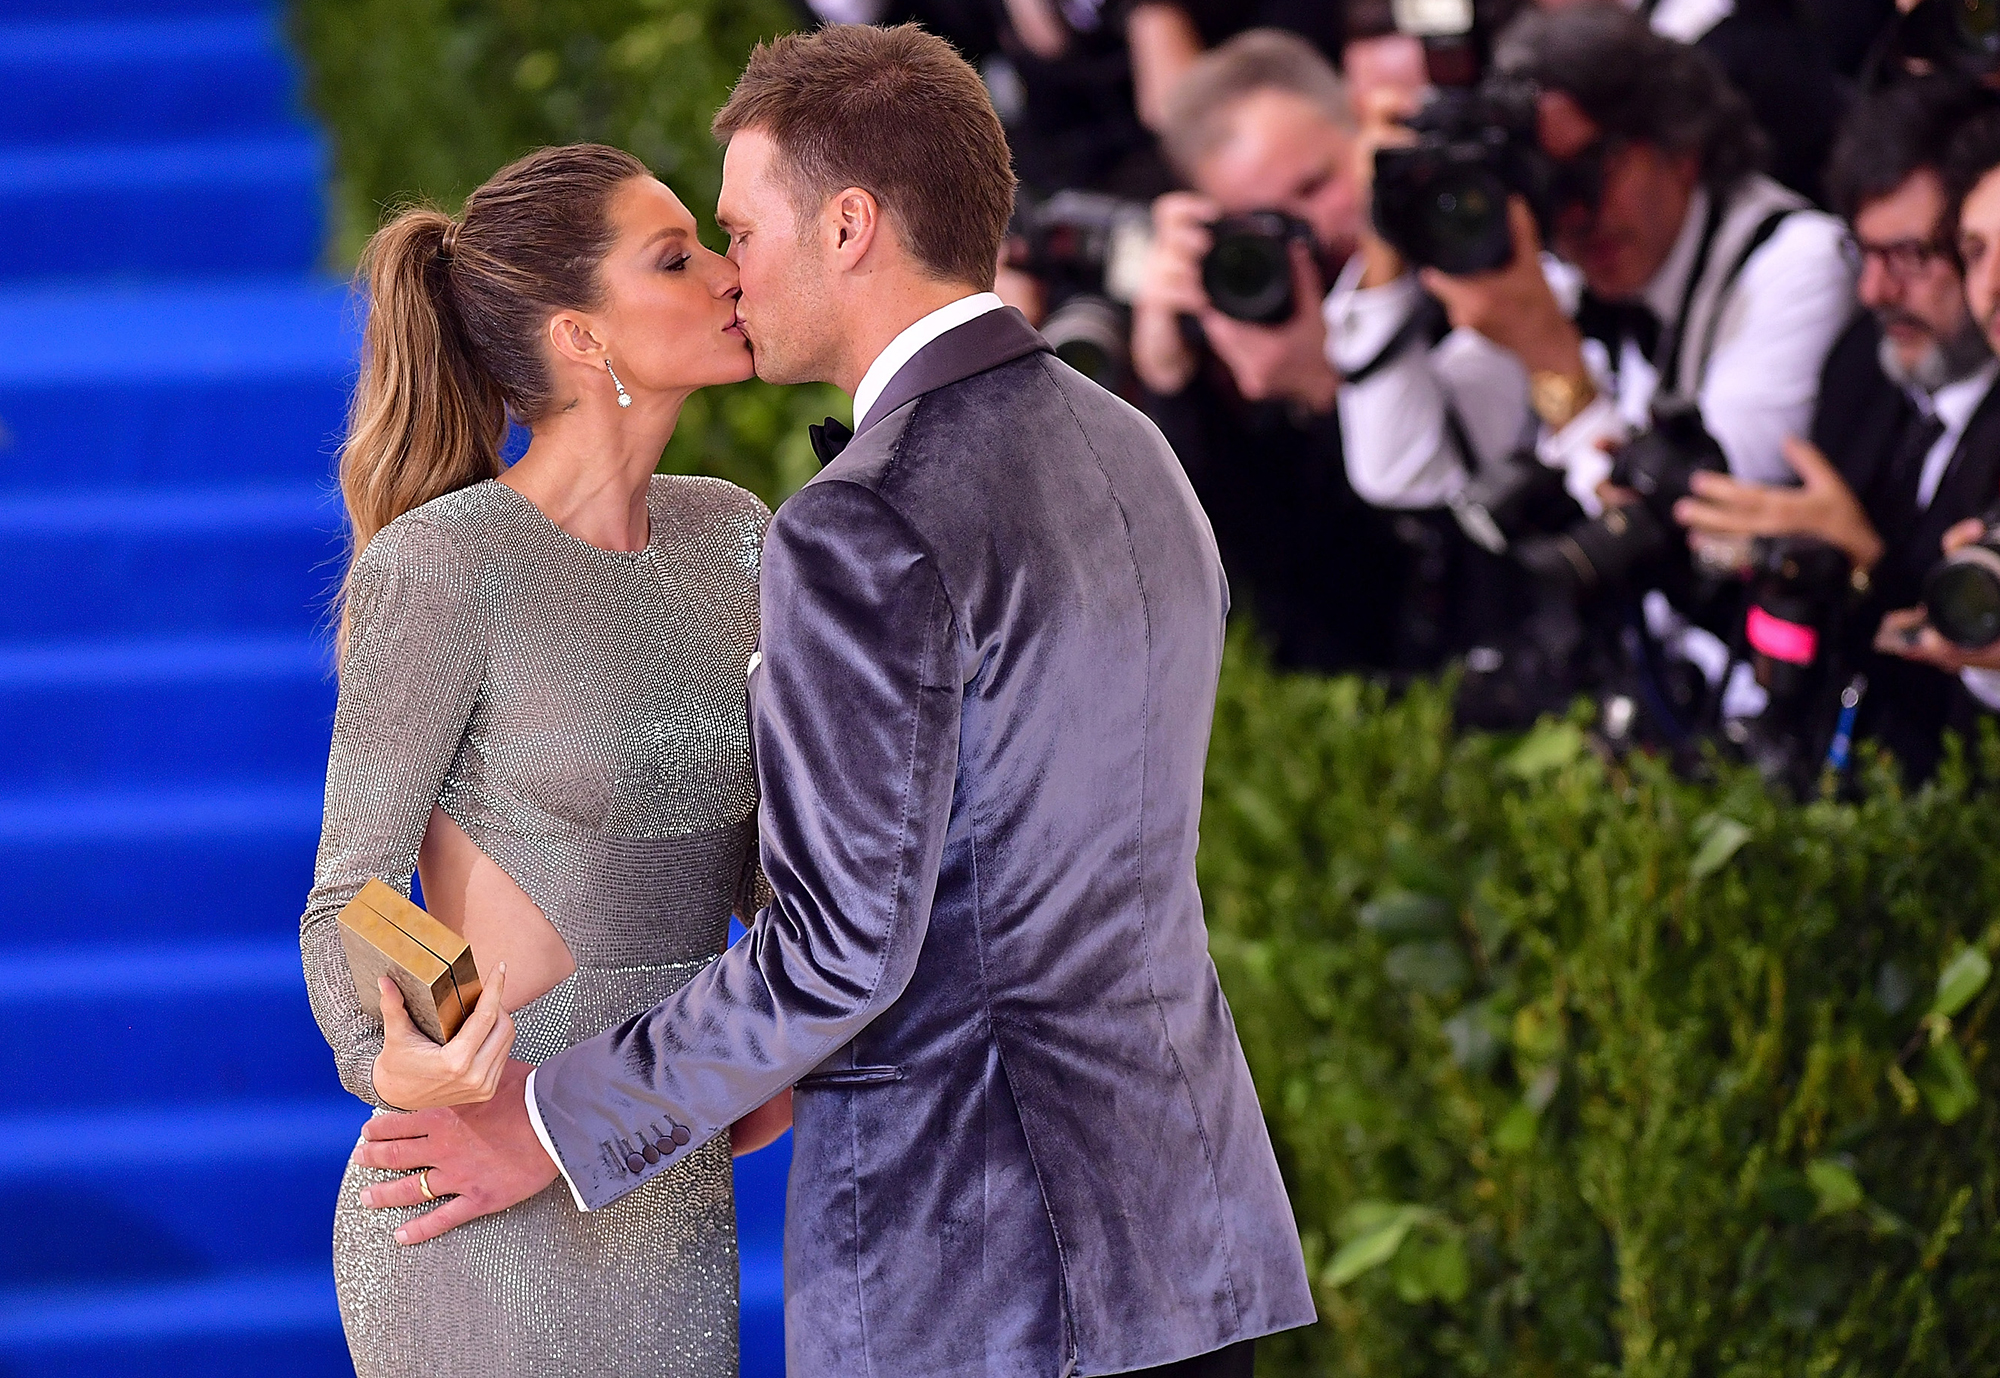 """Tom Brady and Gisele Bundchen: A Timeline of Their Relationship - Bündchen jumped for joy in January 2019 after the Patriots defeated the Kansas City Chiefs in the AFC Championship game and earned Brady's ninth trip to the Super Bowl. """"I first want to say hi to my wife, I love you so much,"""" Brady said during his post-game interview."""